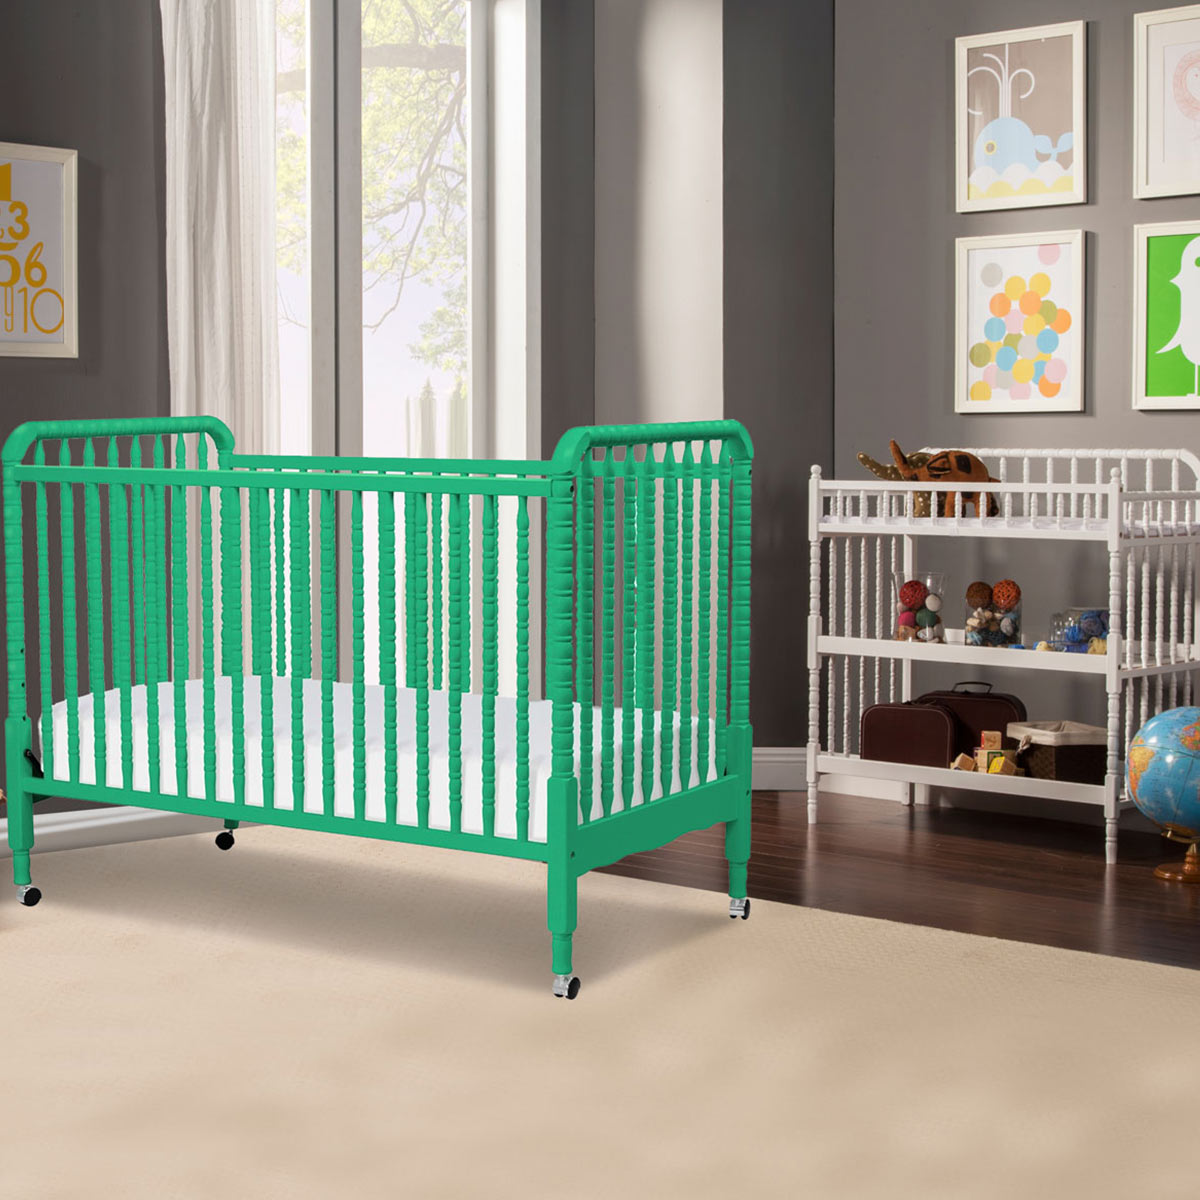 Contemporary white wooden jenny lind crib for your baby to sleep - Davinci 2 Piece Nursery Set Sunshine Jenny Lind Crib And White Changing Table Free Shipping